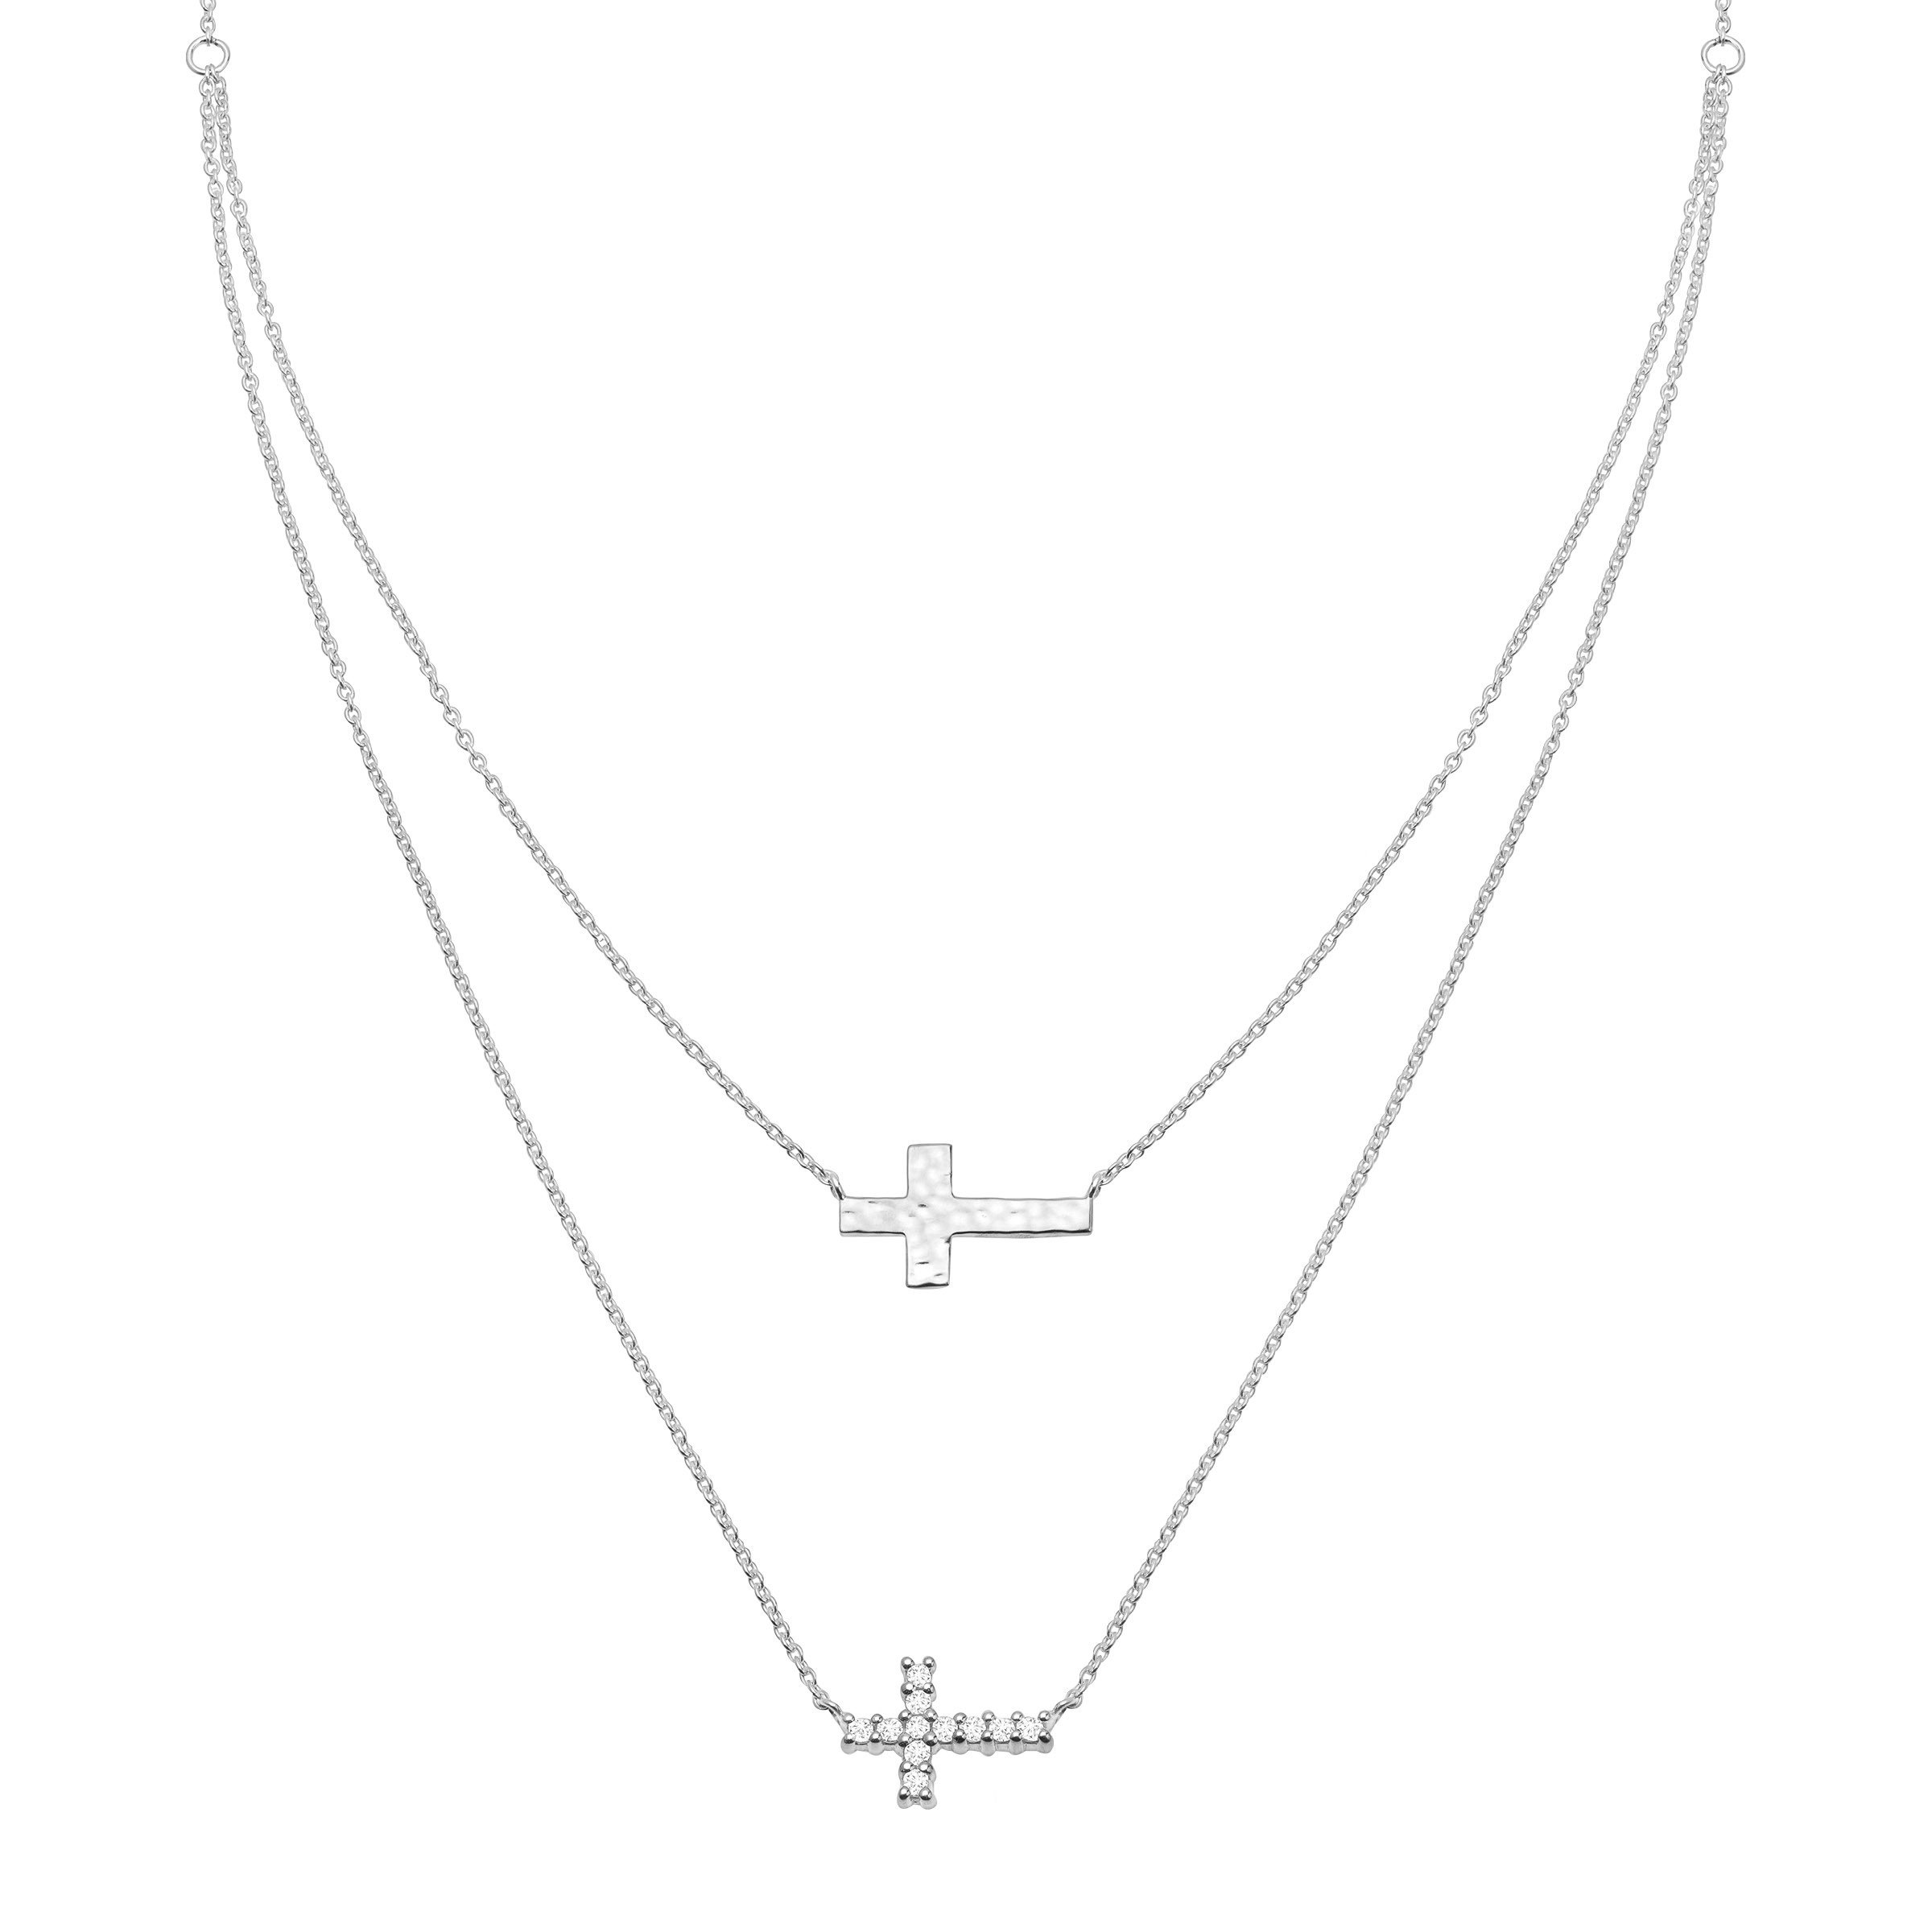 Silpada 'Duplex Cross' Layered Horizontal Cross Necklace with Cubic Zirconia in Sterling Silver